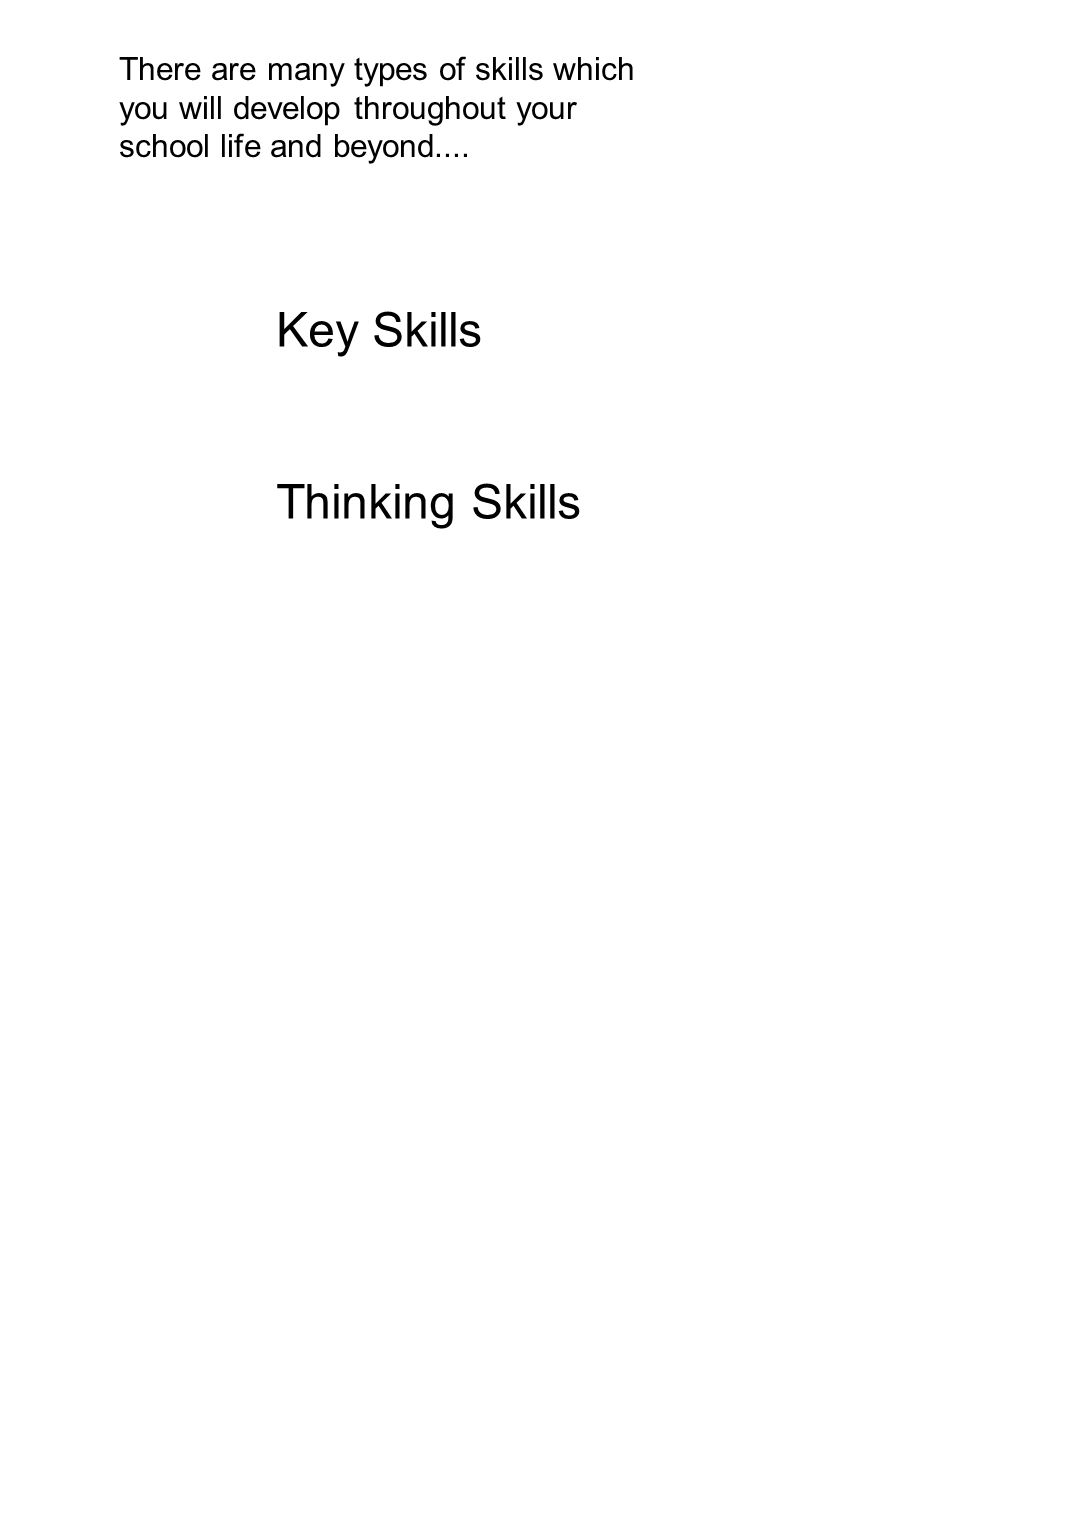 Key Skills Thinking Skills There are many types of skills which you will develop throughout your school life and beyond....